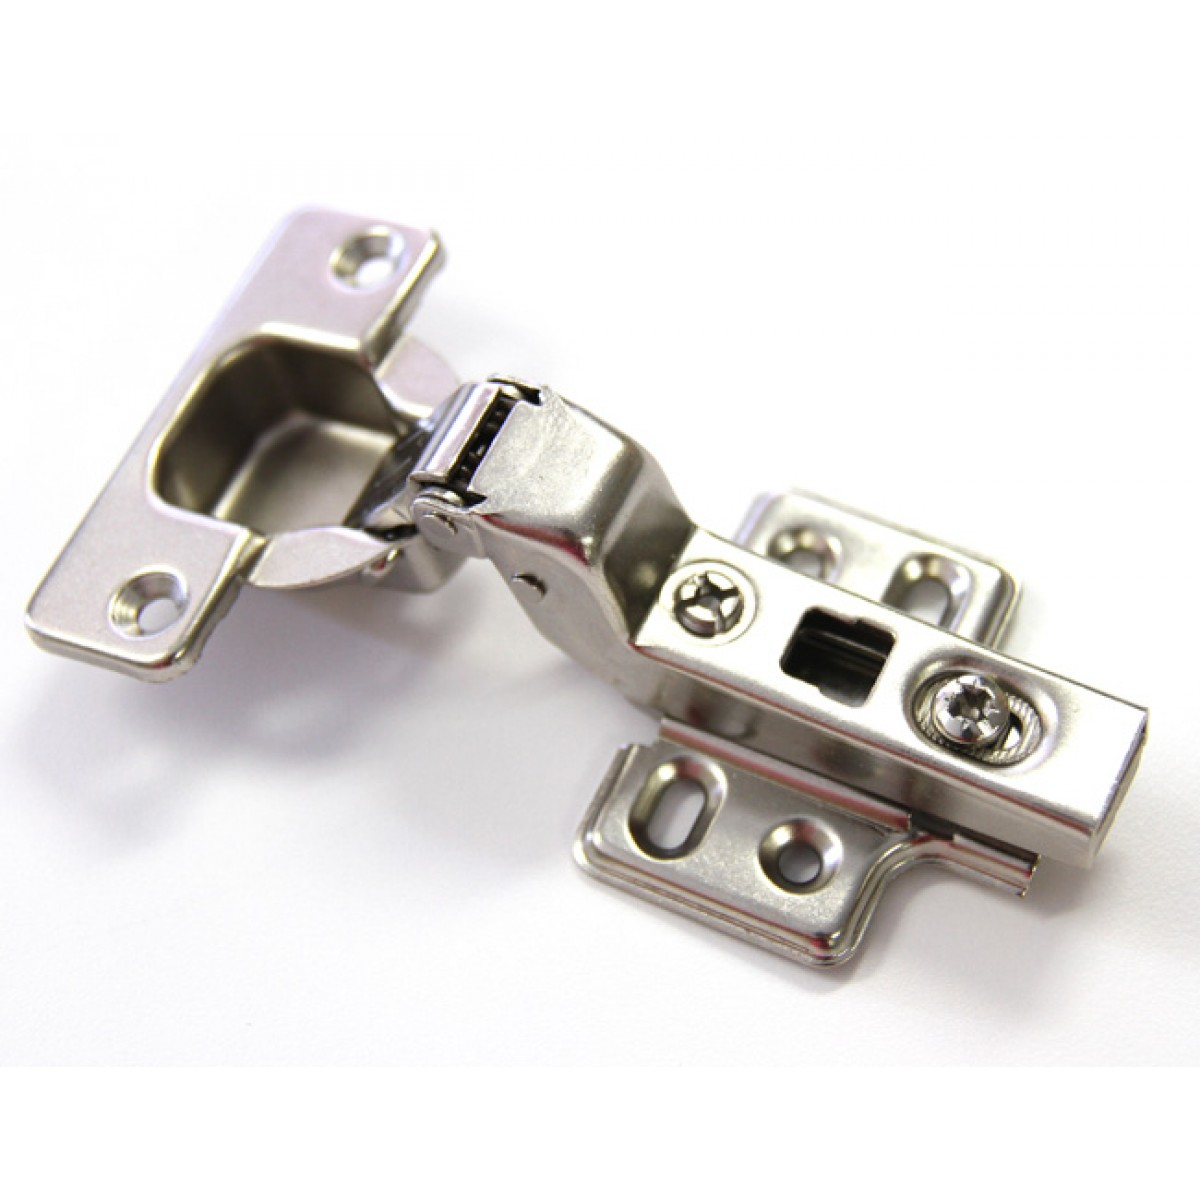 European Kitchen Cabinet Hinges European Cabinet Concealed Self Close Inset Hinge For